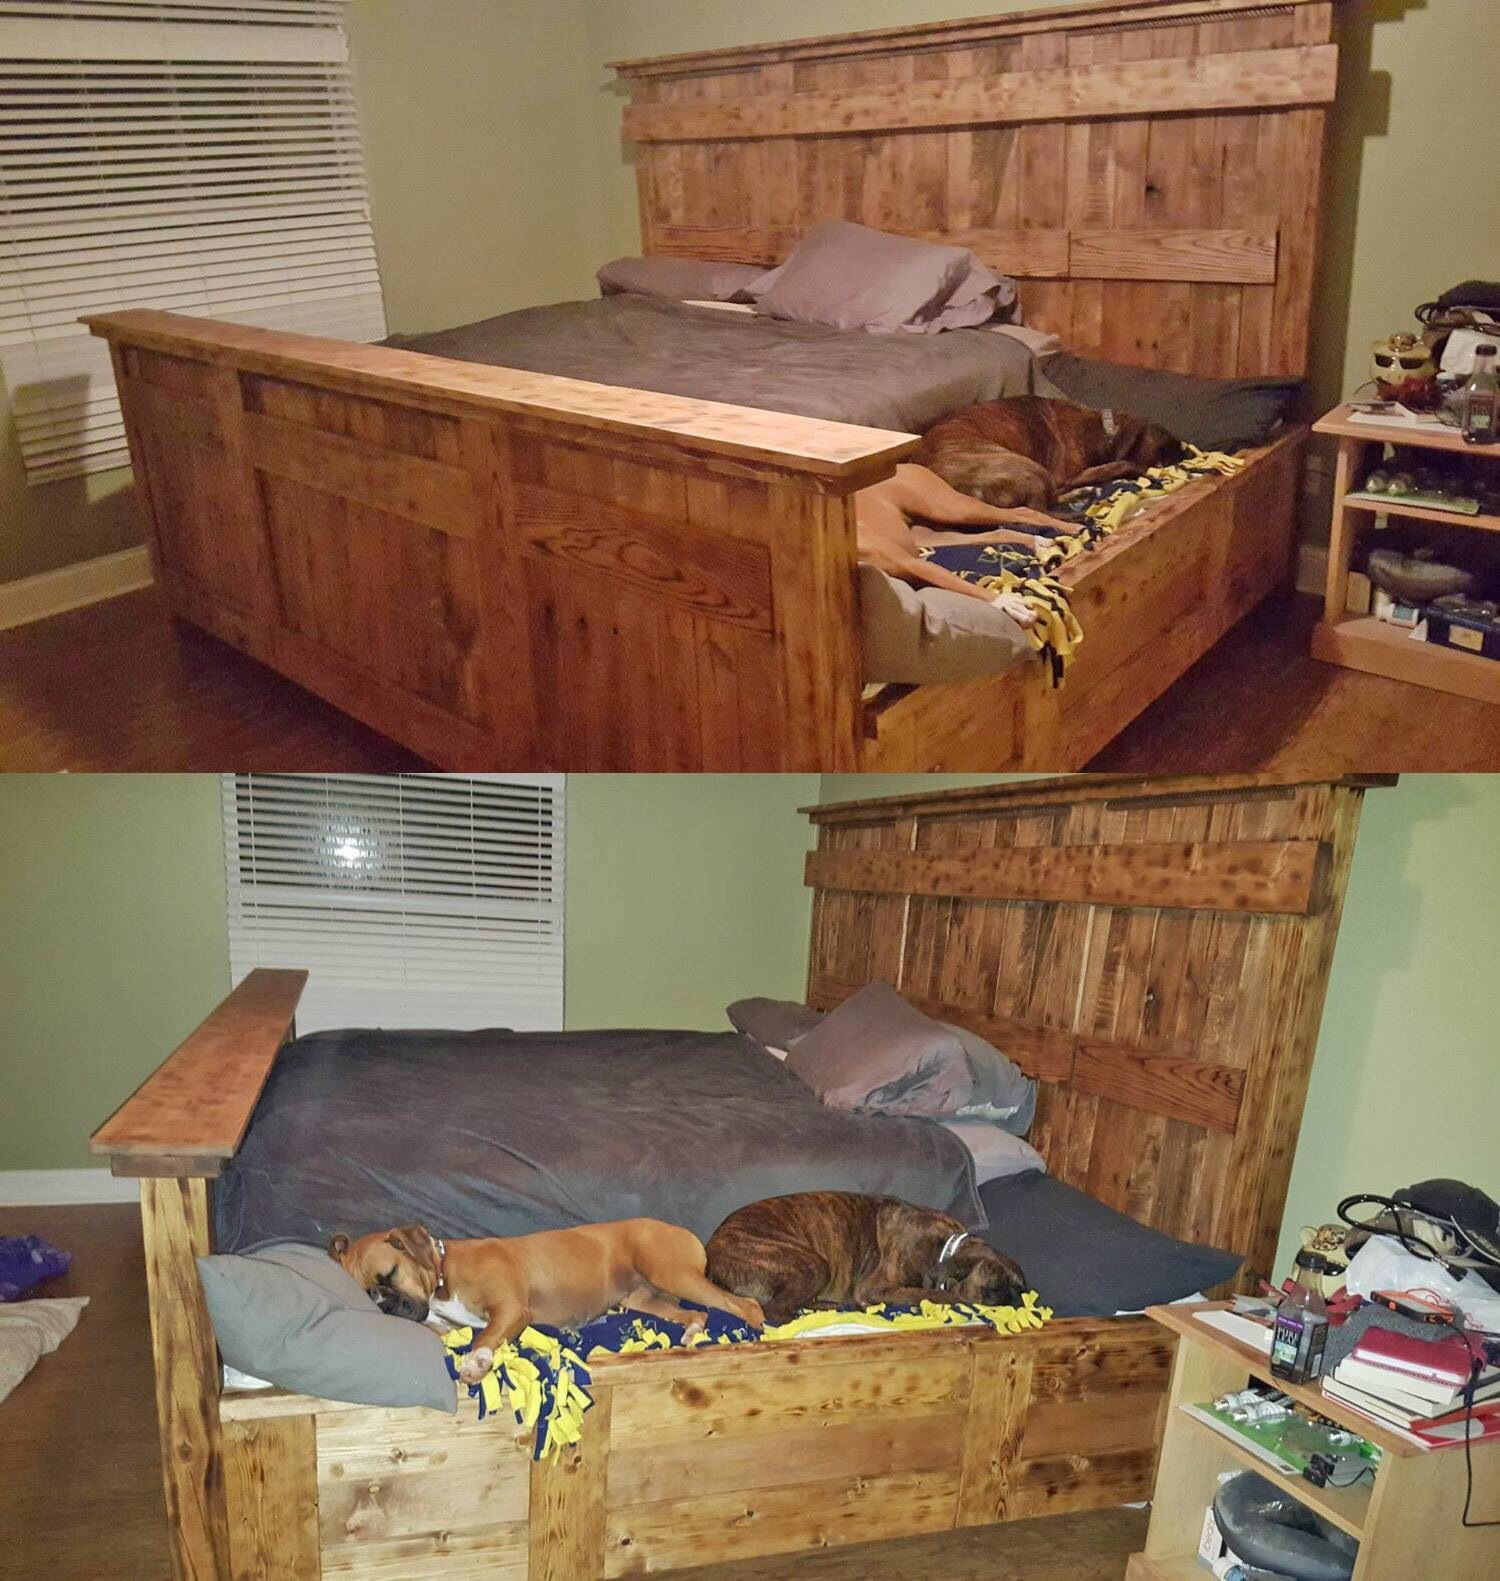 Baby proof queen bed - King Bed Frame With Full Queen Bed Makes For Extra Room To Place Your Dogs